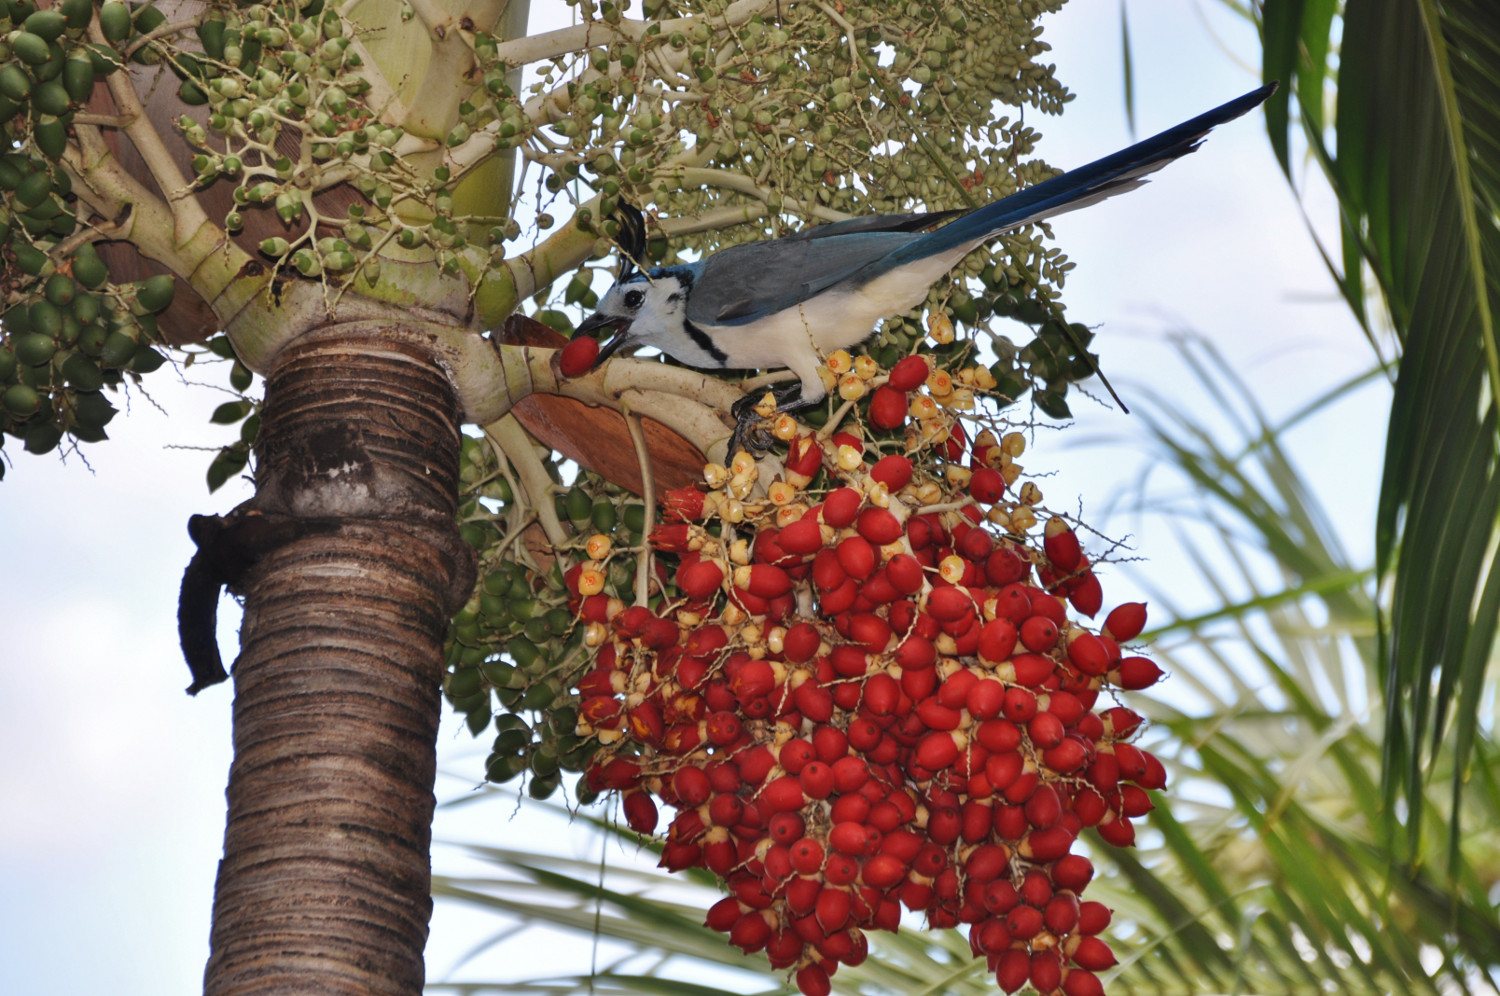 Ein Vogel lässt sich die Früchte der Weihnachtspalme schmecken | A bird helps itself to the fruit of the Christmas palm tree